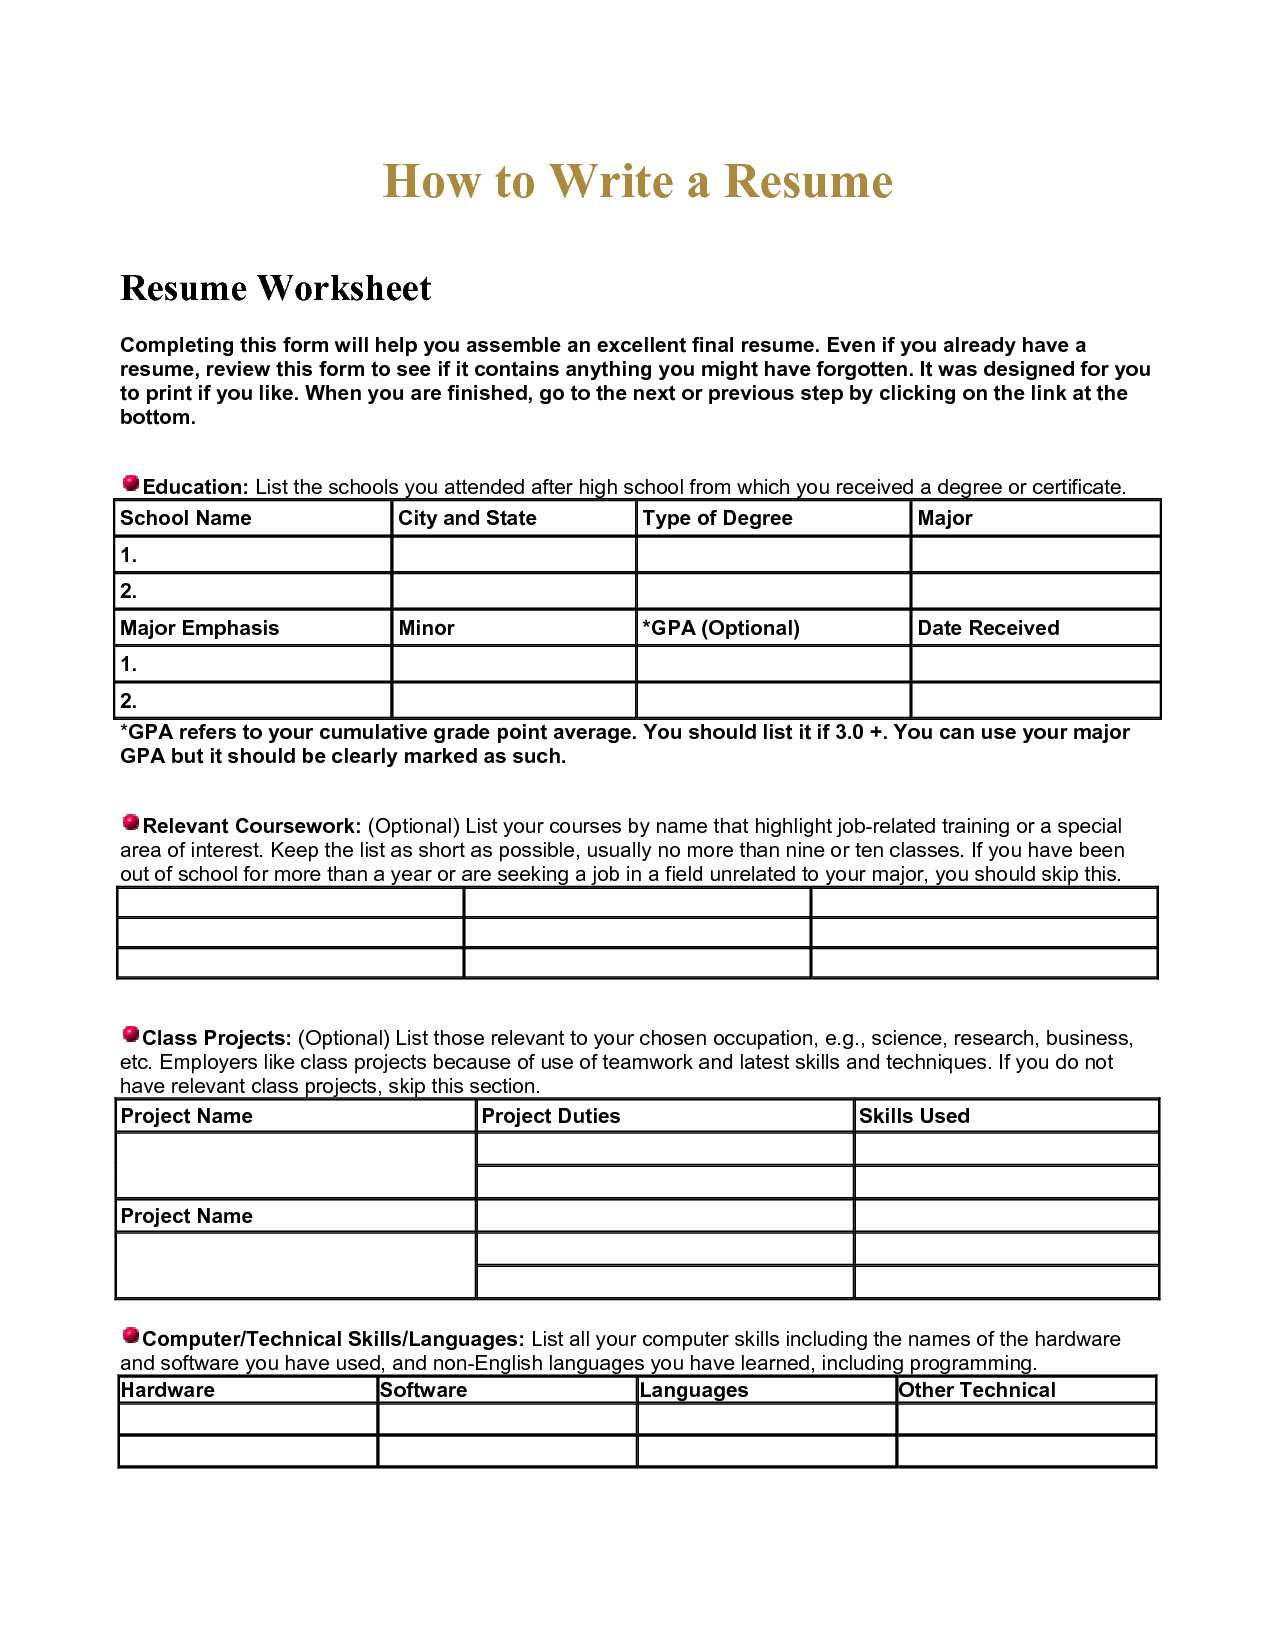 Spreadsheet Class For Worksheets For Computer Class And High School Resume Worksheet Using